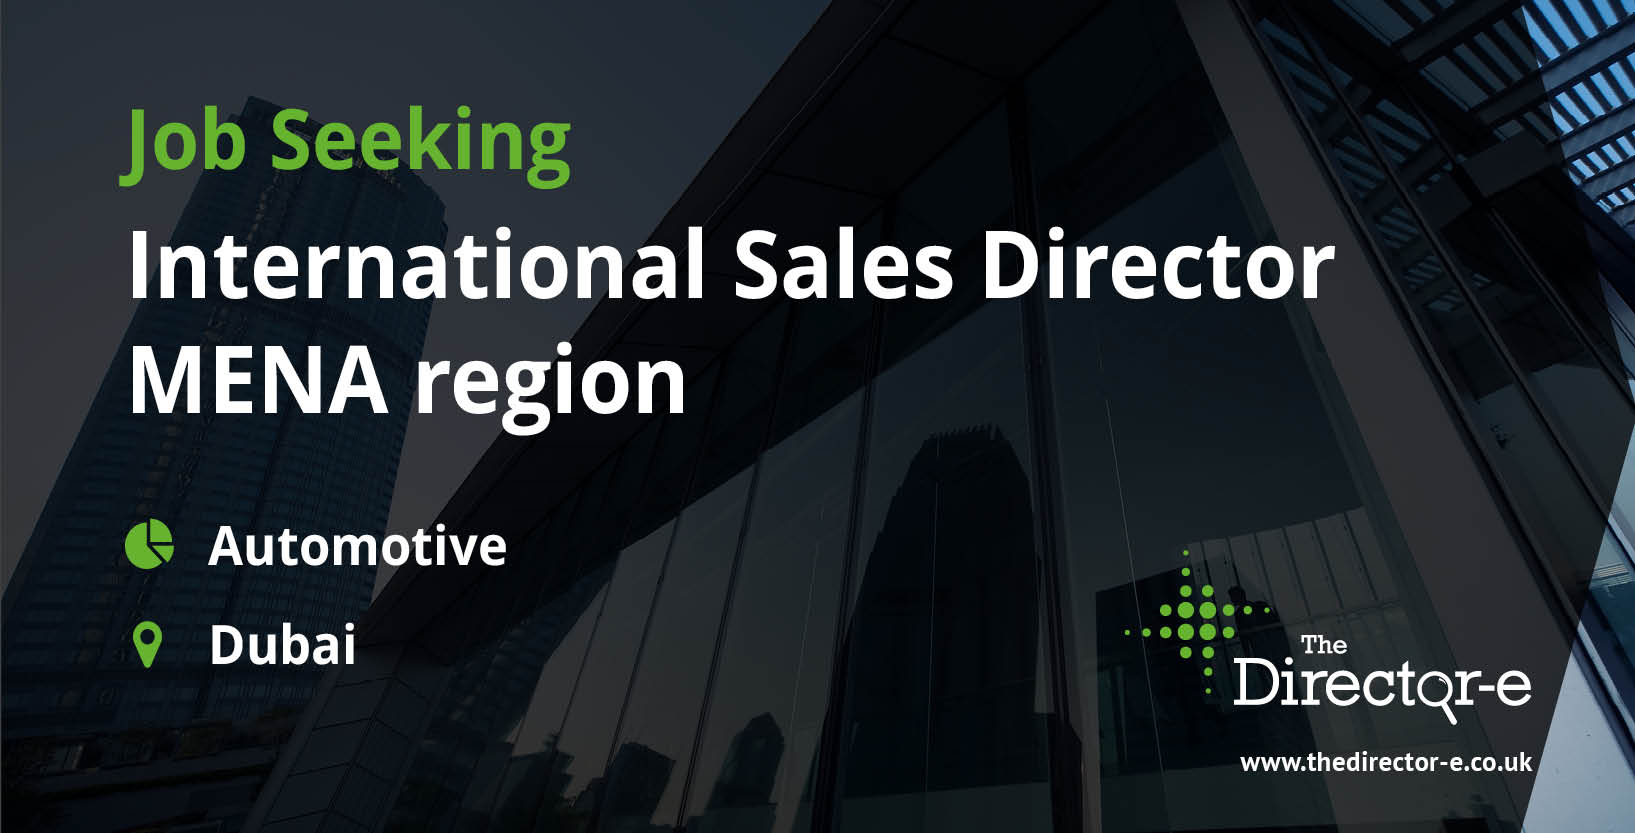 automotive international sales director mena region dubai tde job seeker social graphic